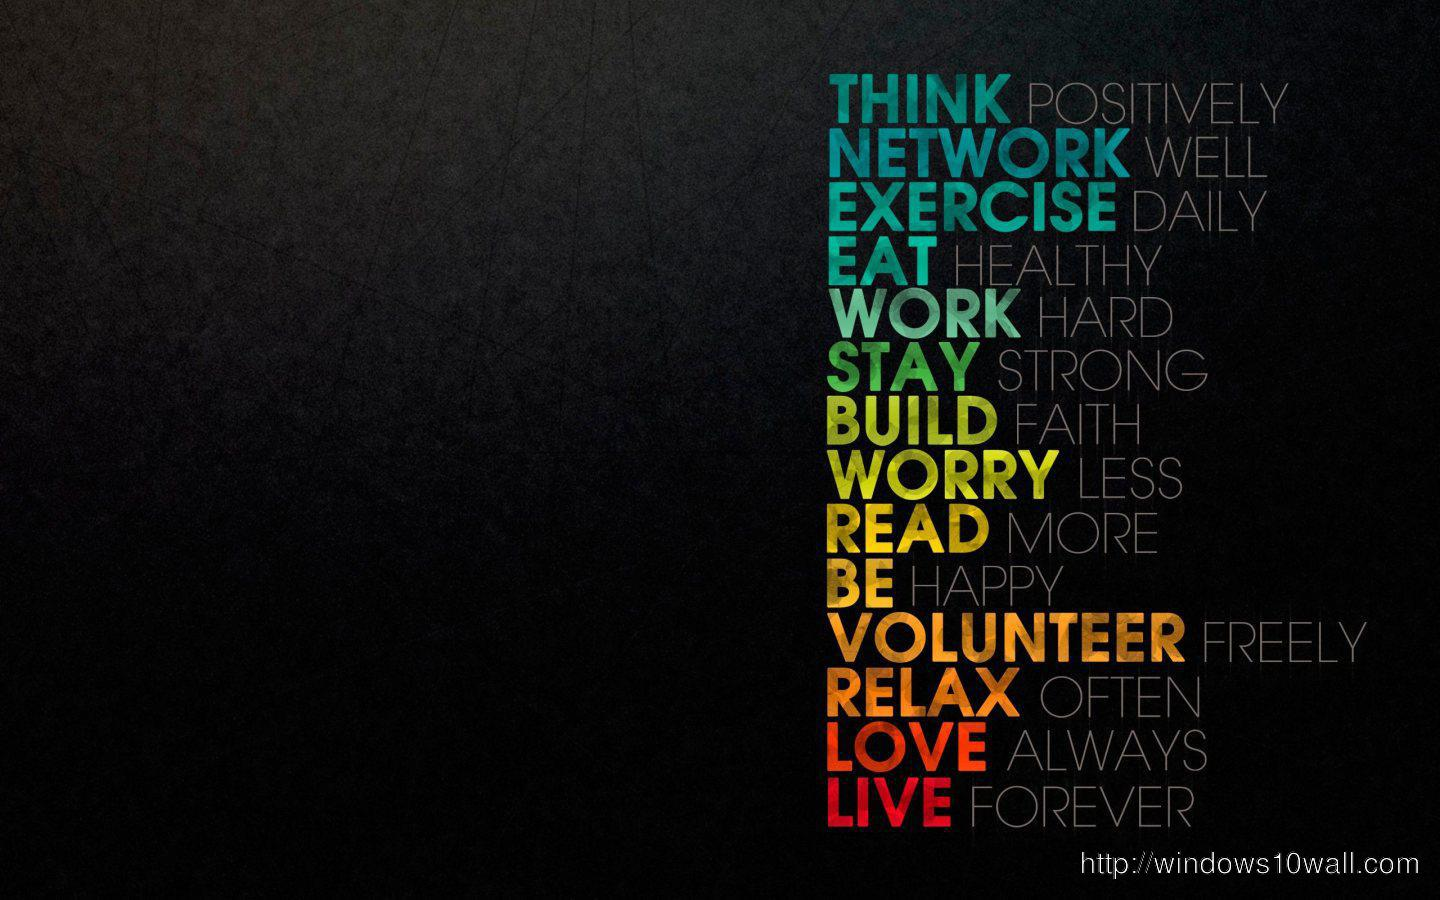 Famous quotes hd wallpaper windows 10 wallpapers - Famous quotes wallpaper hd ...